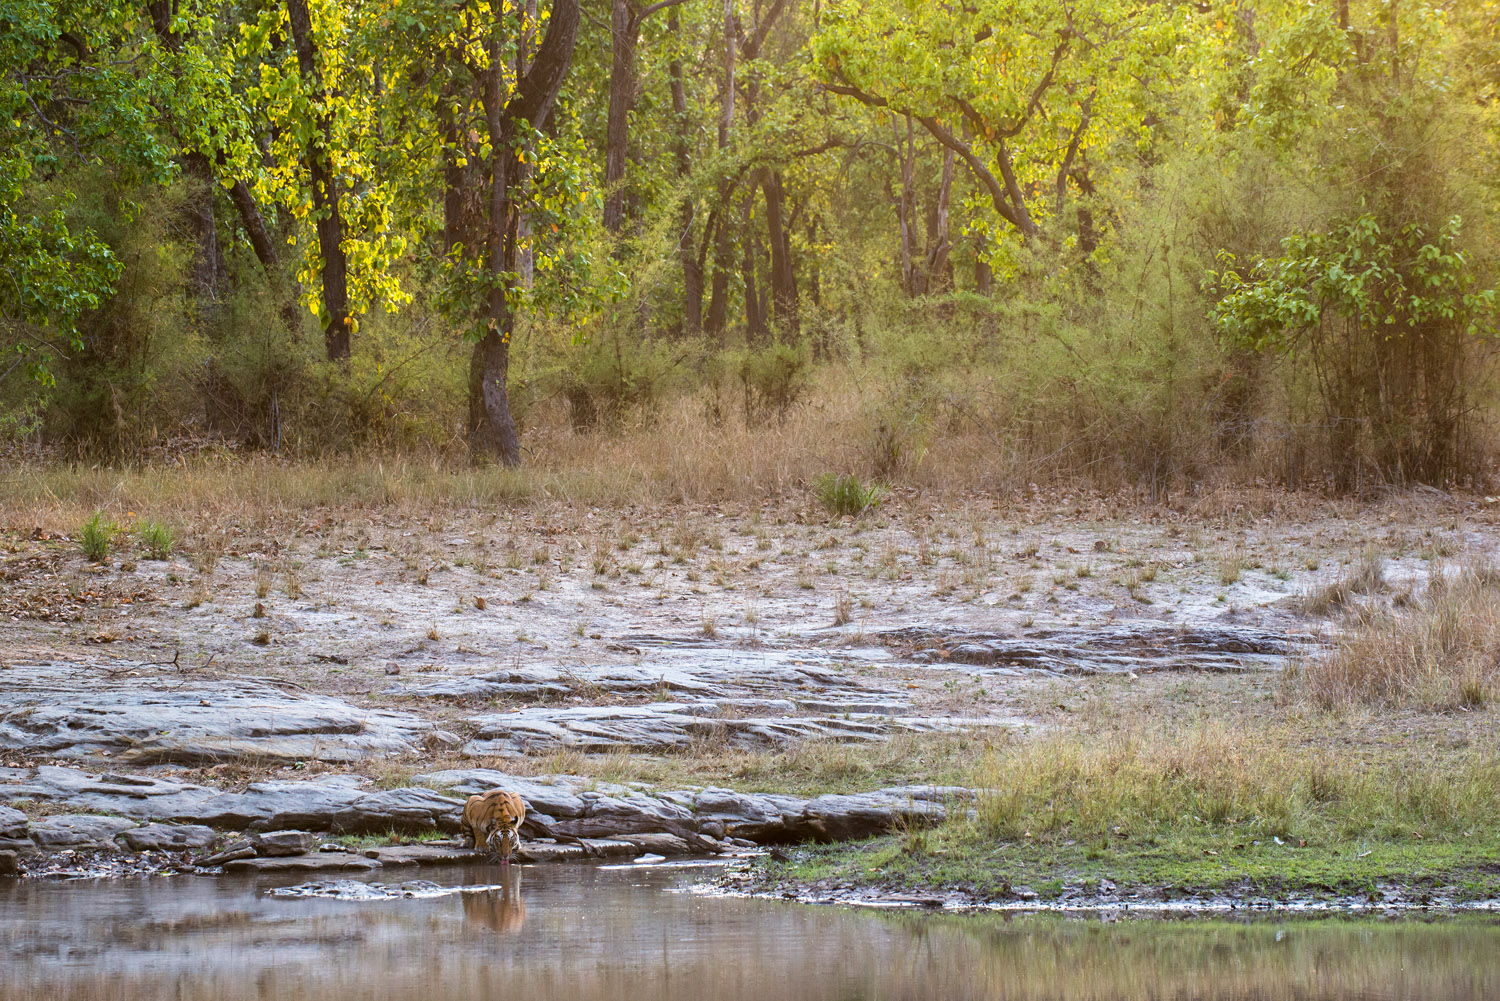 Bengal tigress drinking at edge of pool by sal forest, Bandhavgarh National Park, Madhya Pradesh, India